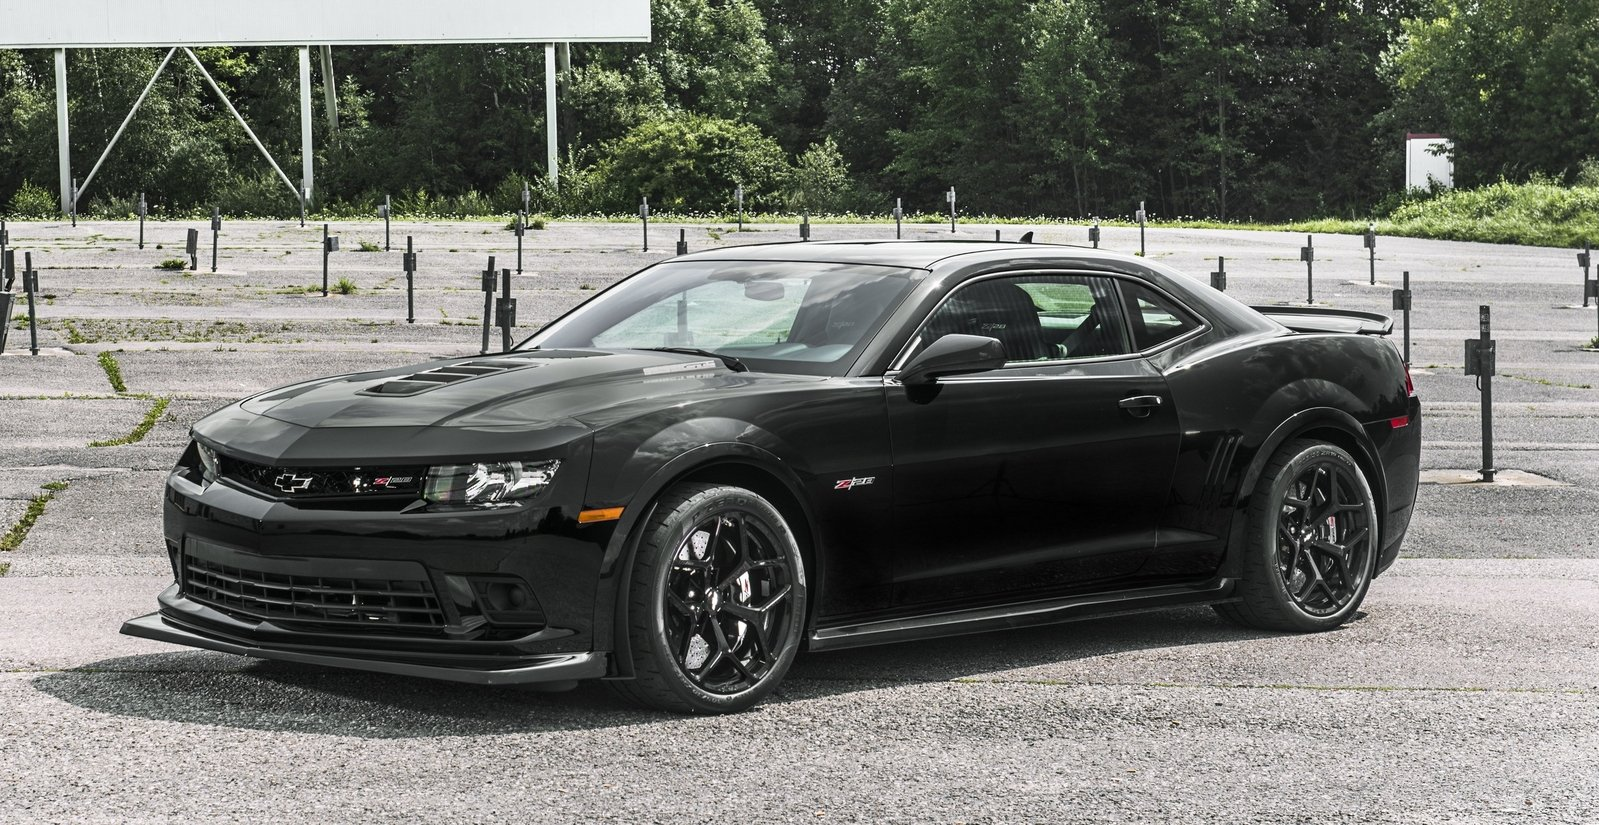 2014 chevrolet camaro z 28 by geiger cars picture 563887 car review top speed. Black Bedroom Furniture Sets. Home Design Ideas